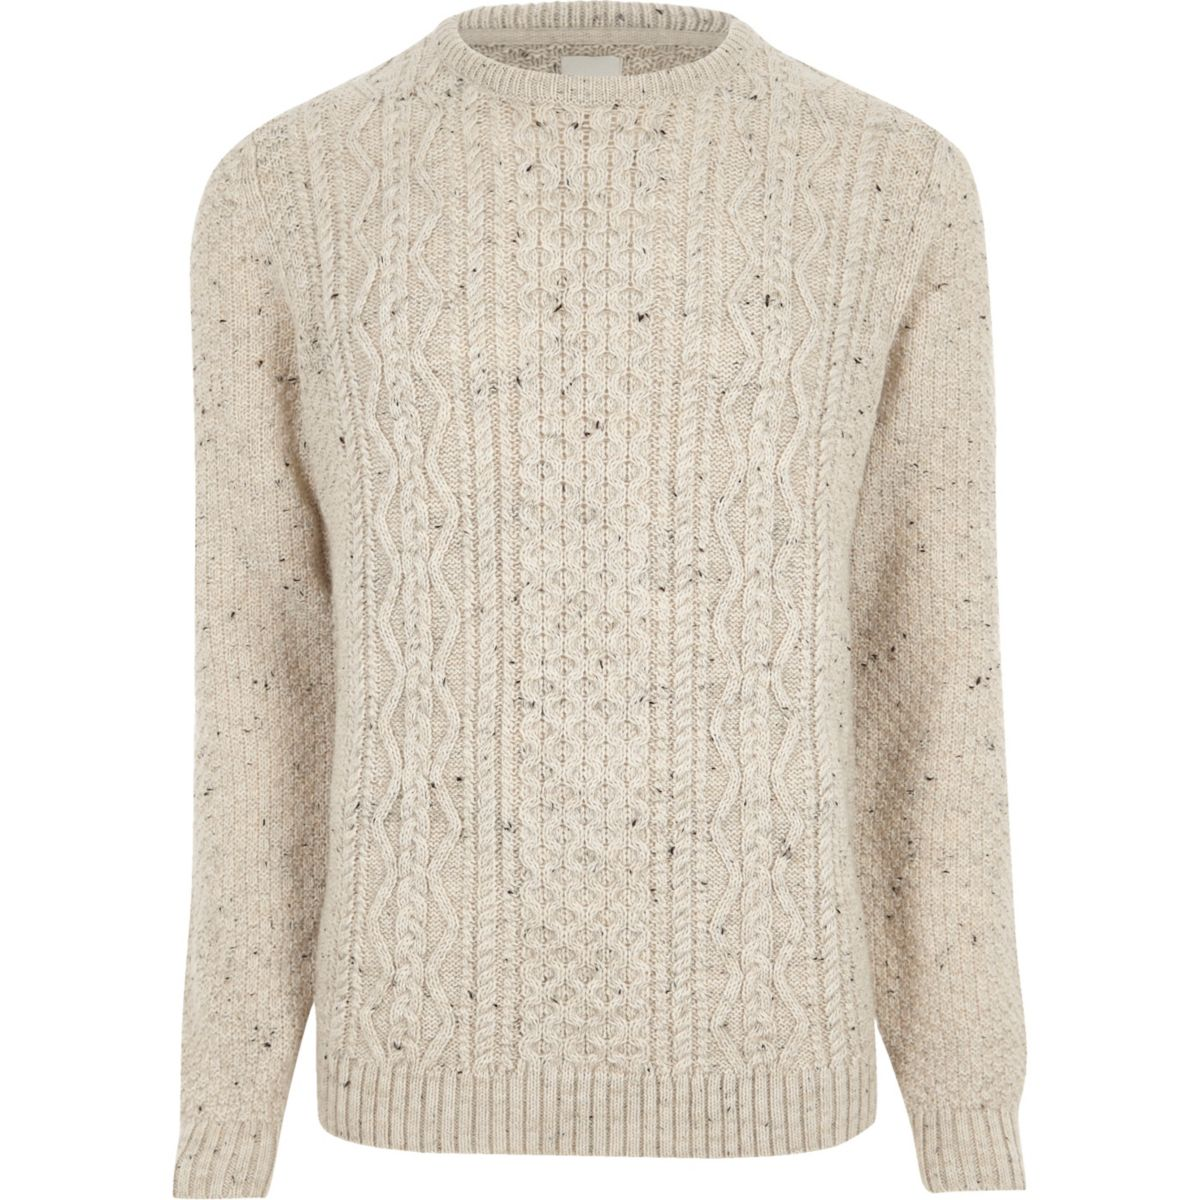 Cream flecked cable knit sweater - Sweaters & Cardigans - Sale - men